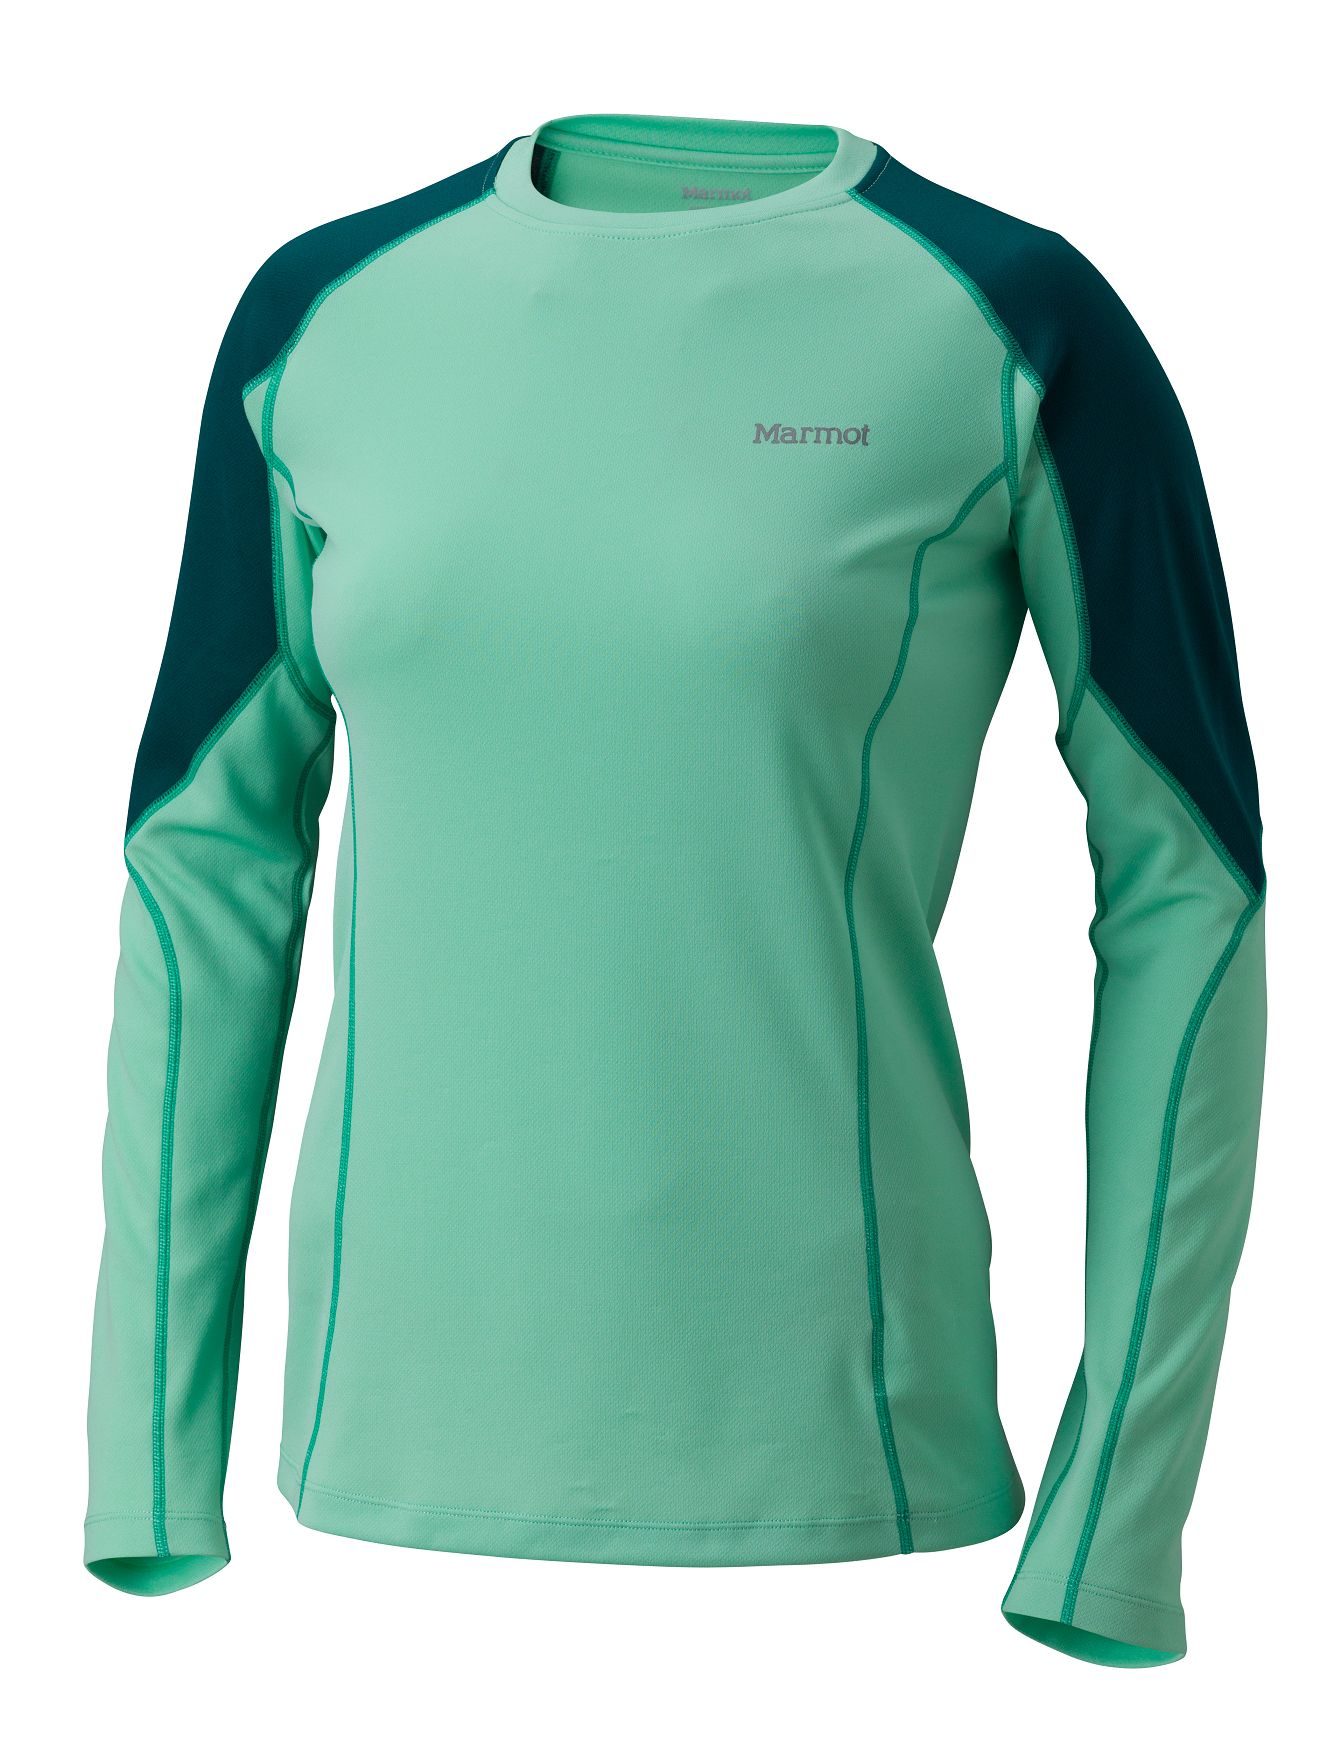 Marmot Wm's ThermalClime Pro 1/2 Zip Green Frost/Gator-30